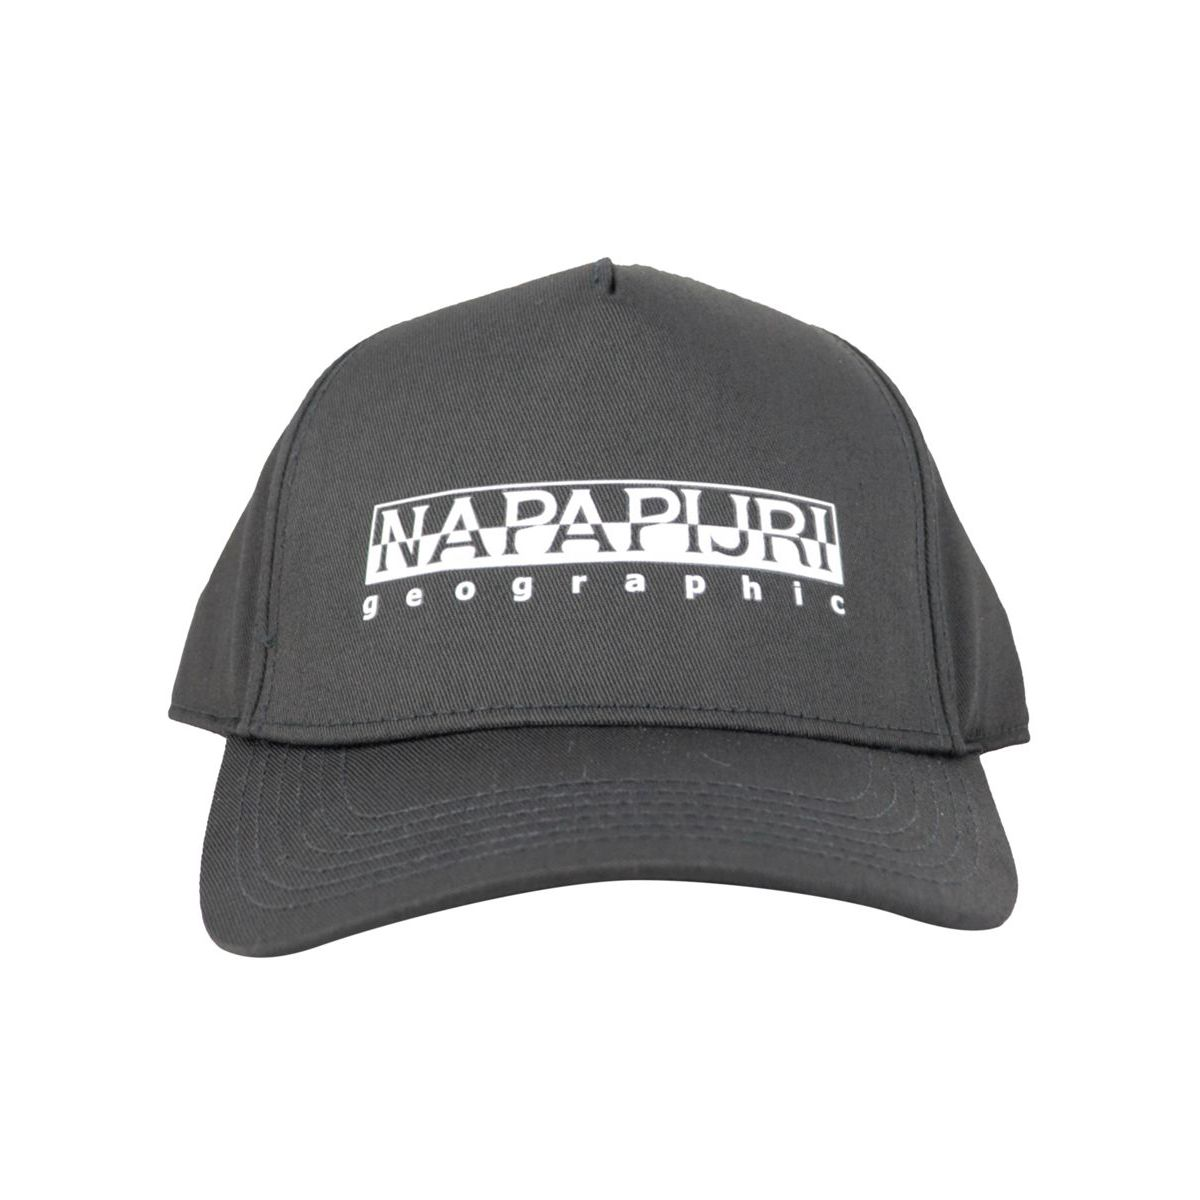 Cotton blend visor hat with printed logo Black NAPAPIJRI